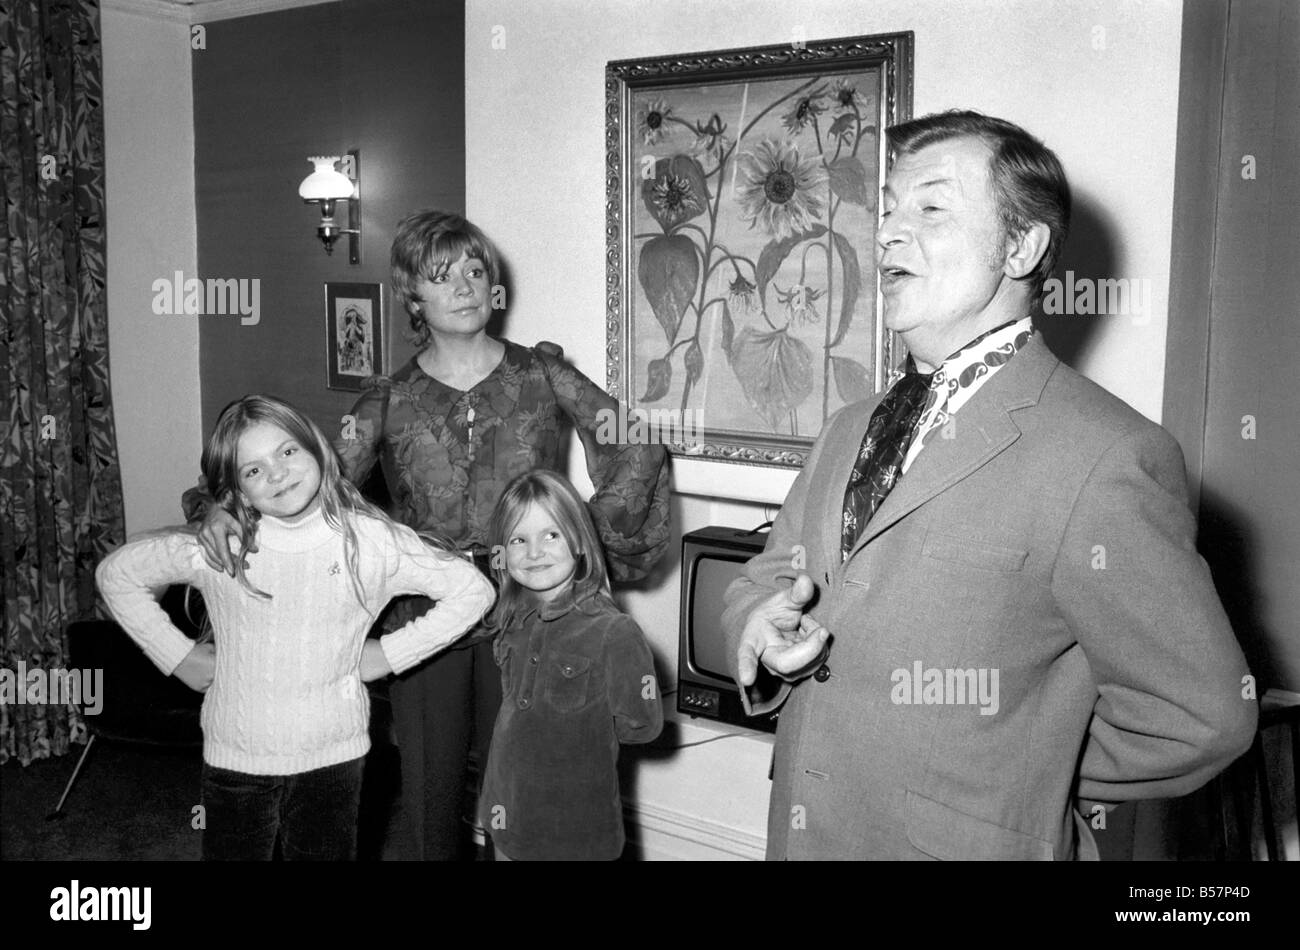 Comedian/Humour: Clive Dunne and family. Clive Dunne at home with his wife, Priscilla, and his two daughters Polly, - Stock Image